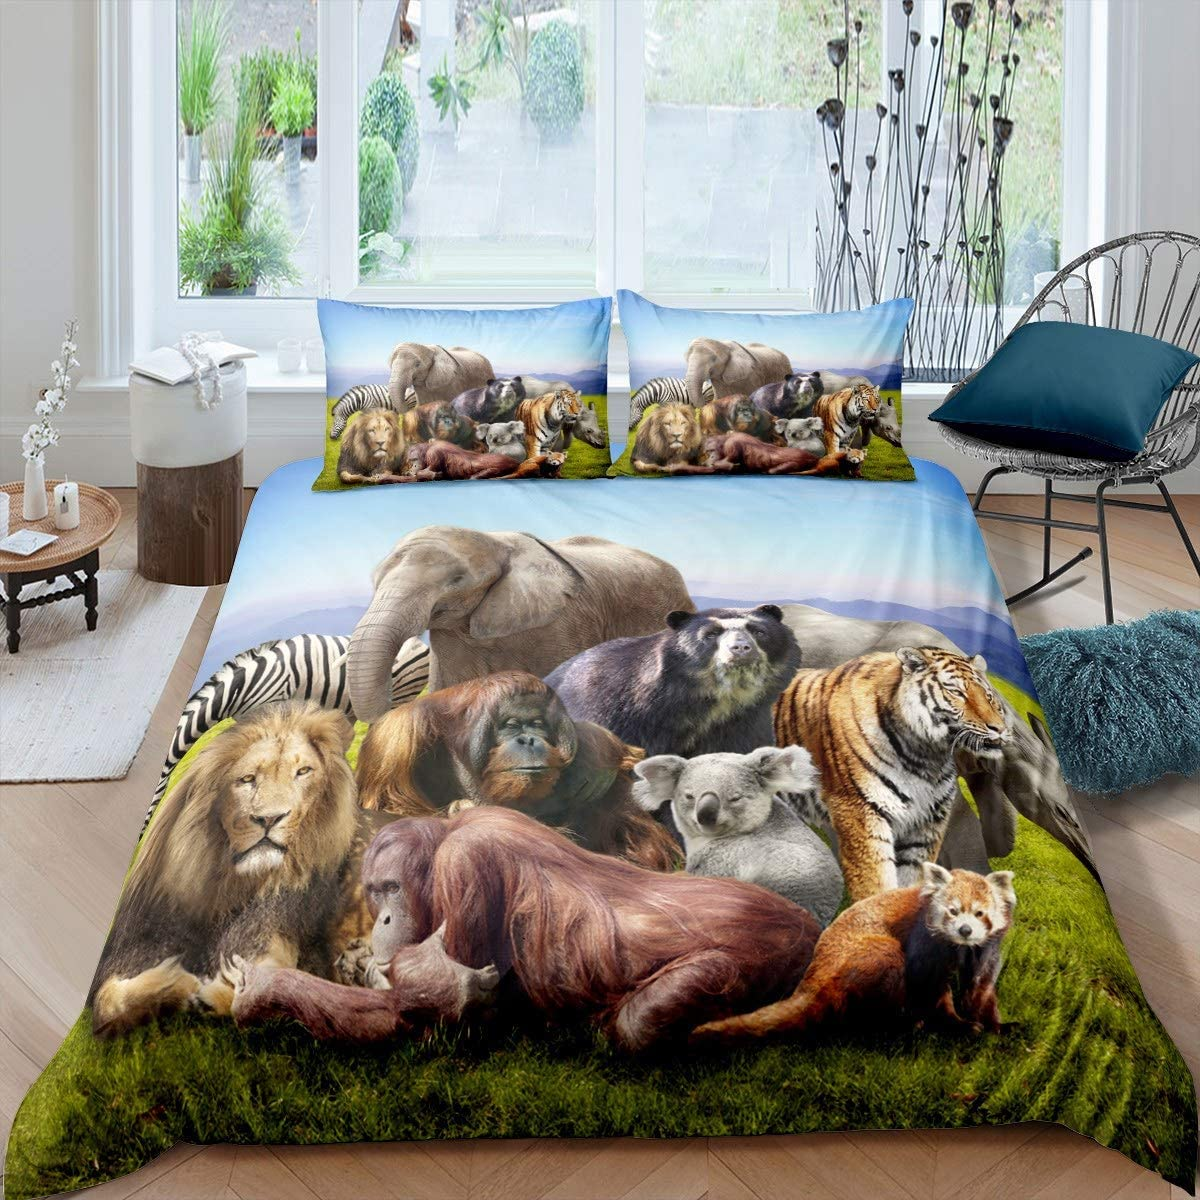 Lion Tiger Bedding Set Zebra Elephant Comforter Cover for Kids Boys Teens Wild Animal Theme Pattern Duvet Cover Breathable Wildlife Style Decor Bedspread Cover Room Decor Quilt Cover King Size